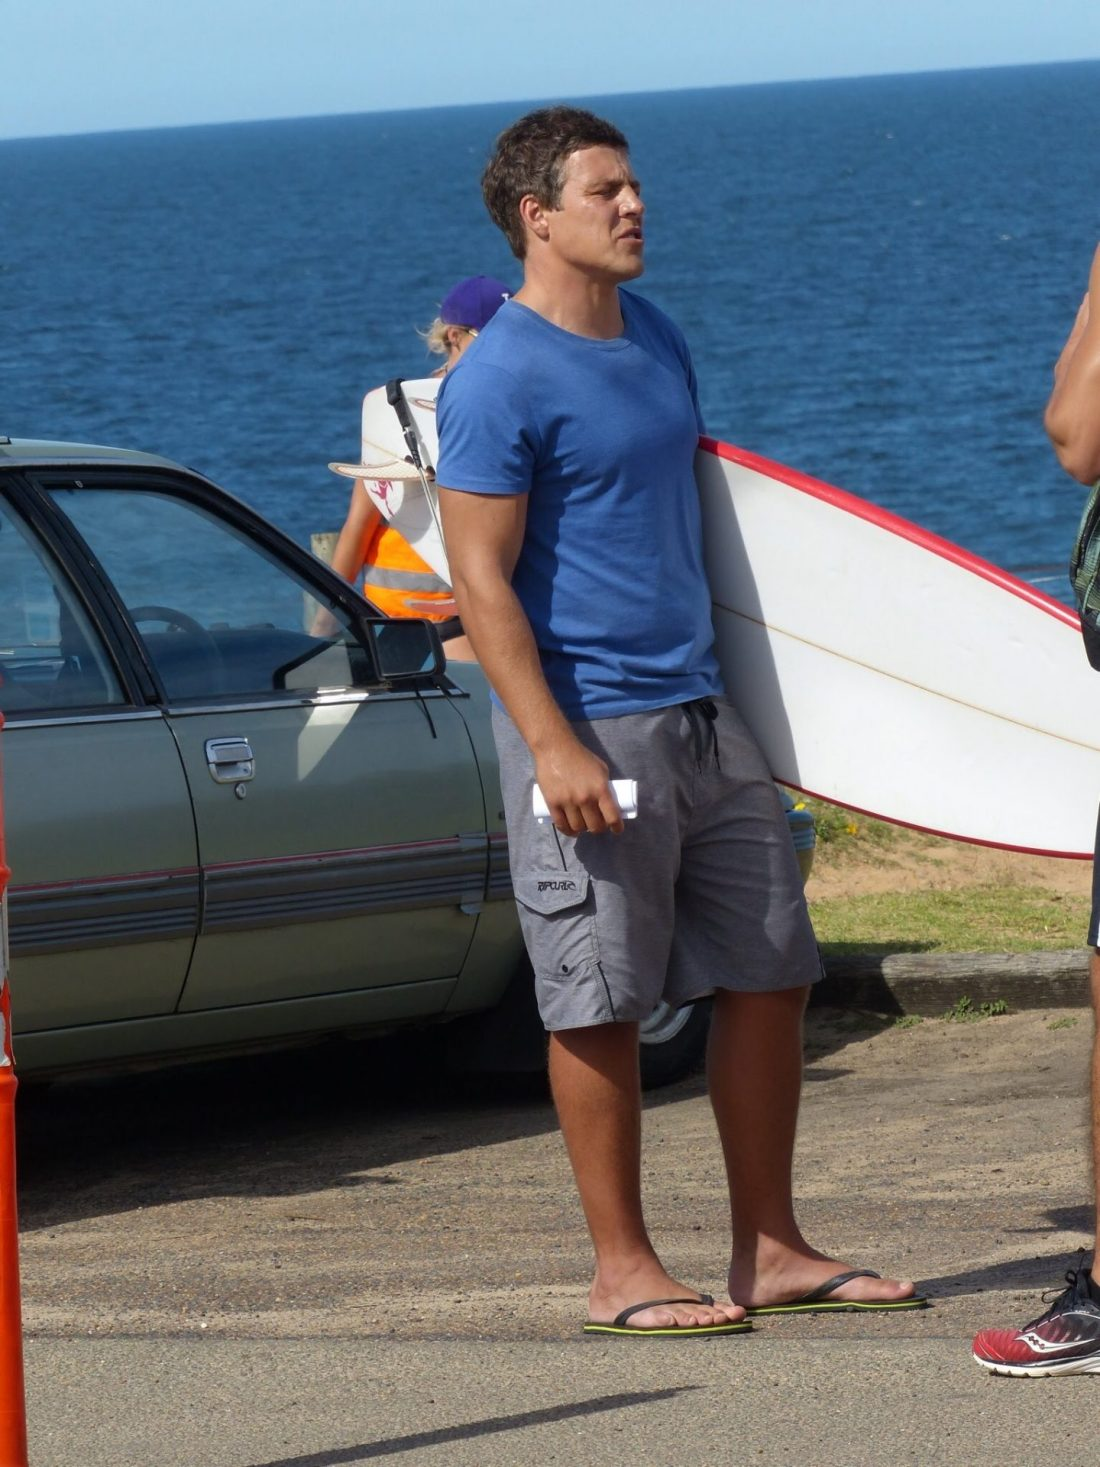 Brax from Home and Away